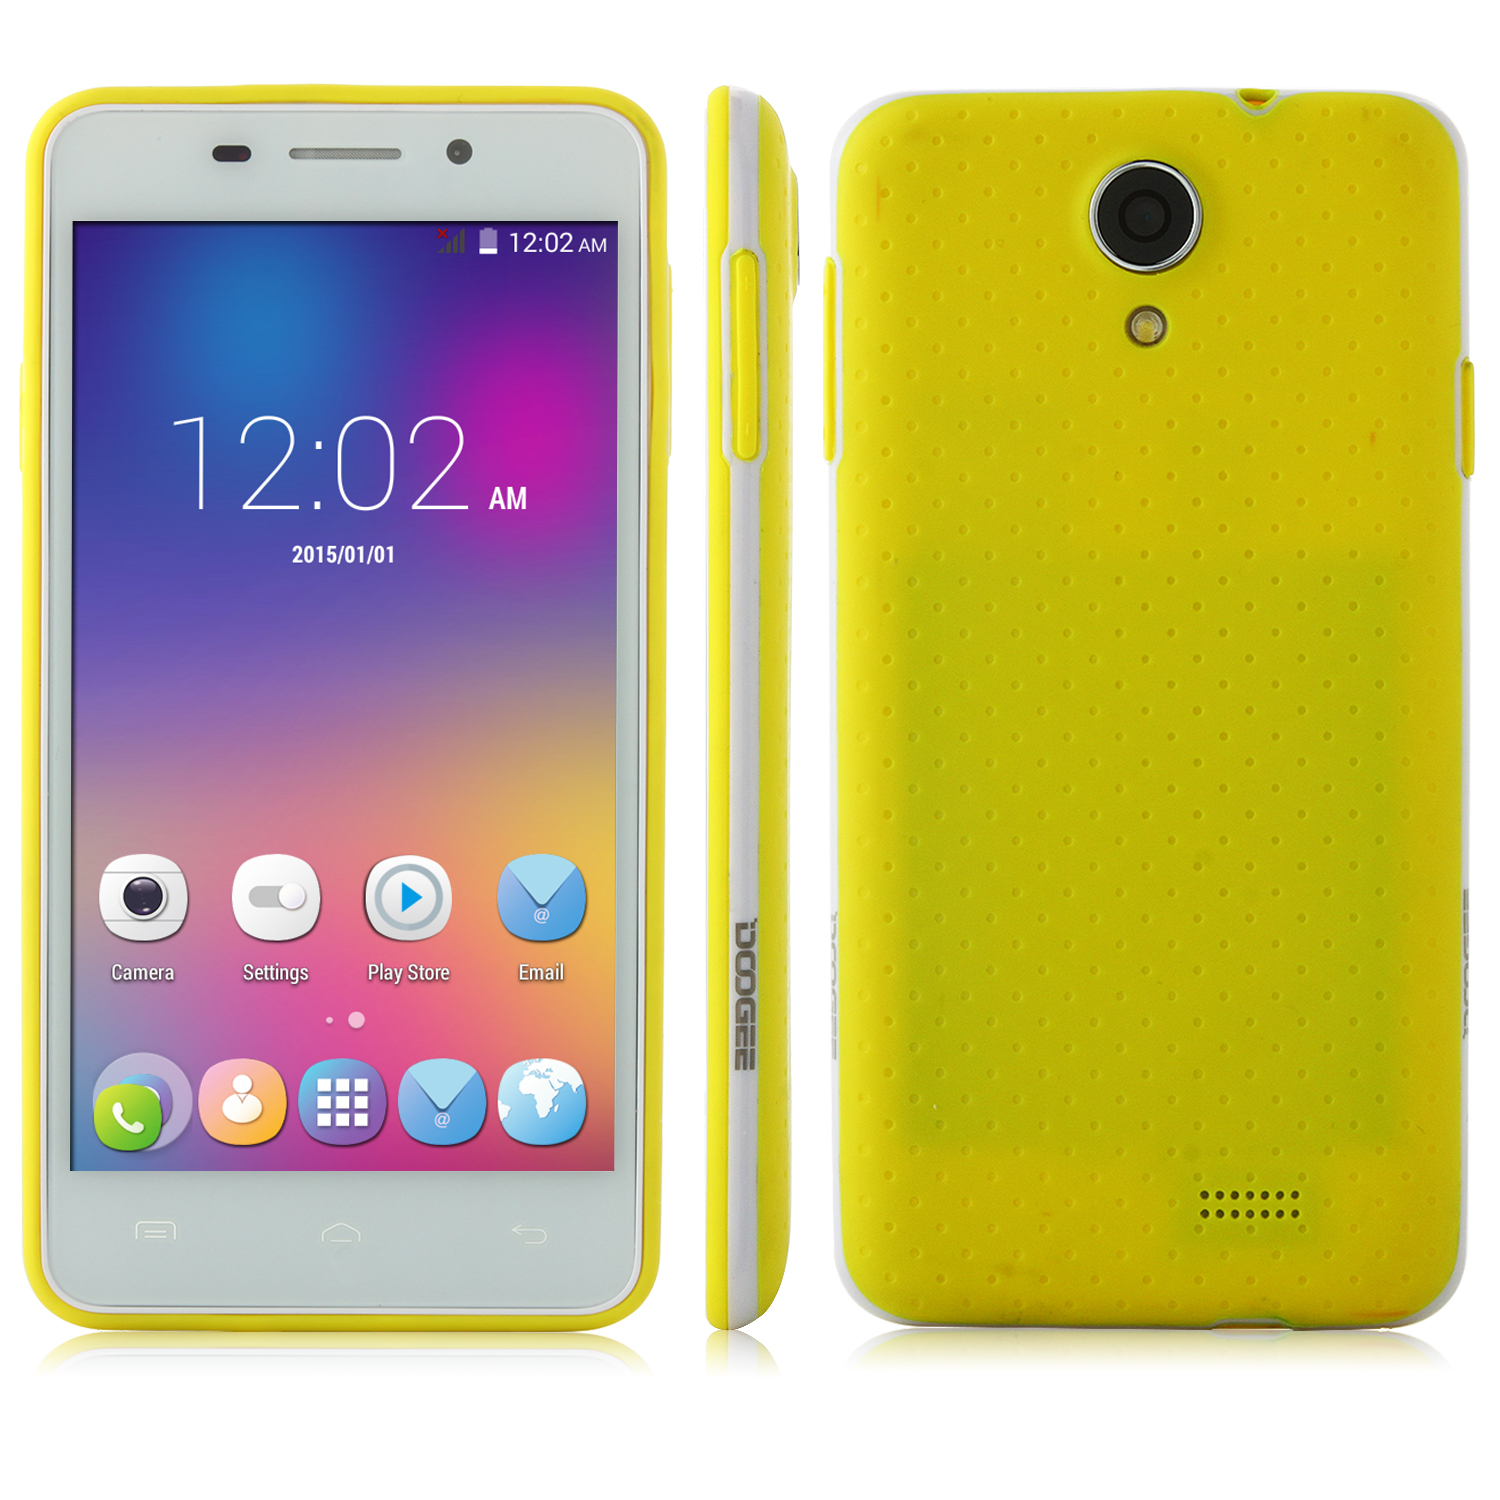 DOOGEE LEO DG280 Smartphone Anti-shock Android 5.0 MTK6582 1GB 8GB 4.5 Inch Yellow